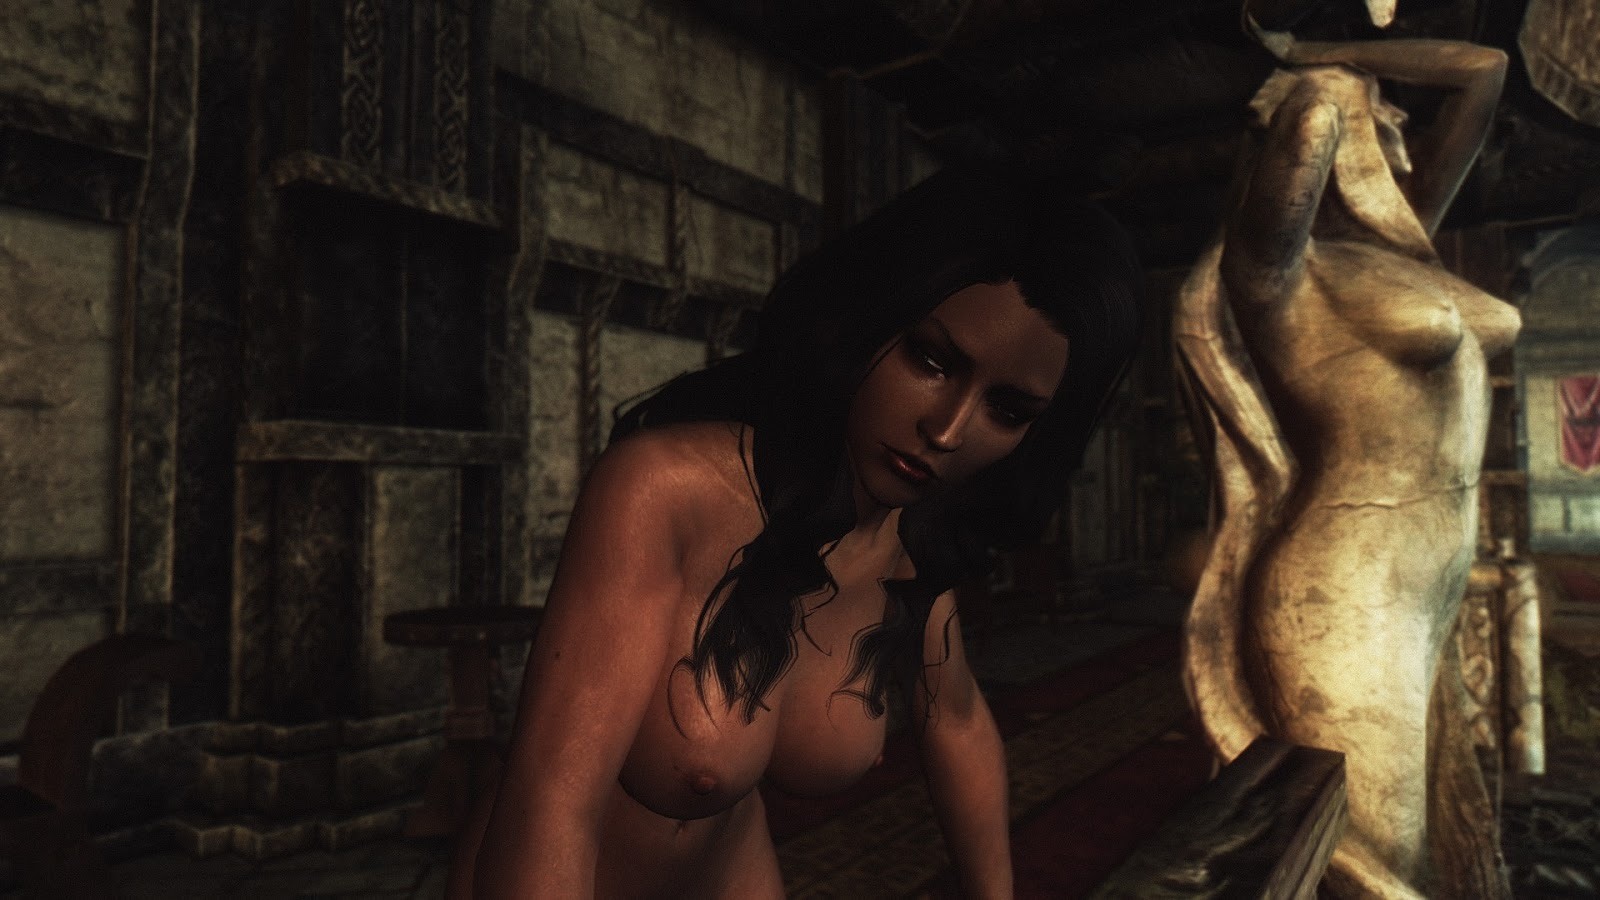 Skyrim nude models naked streaming